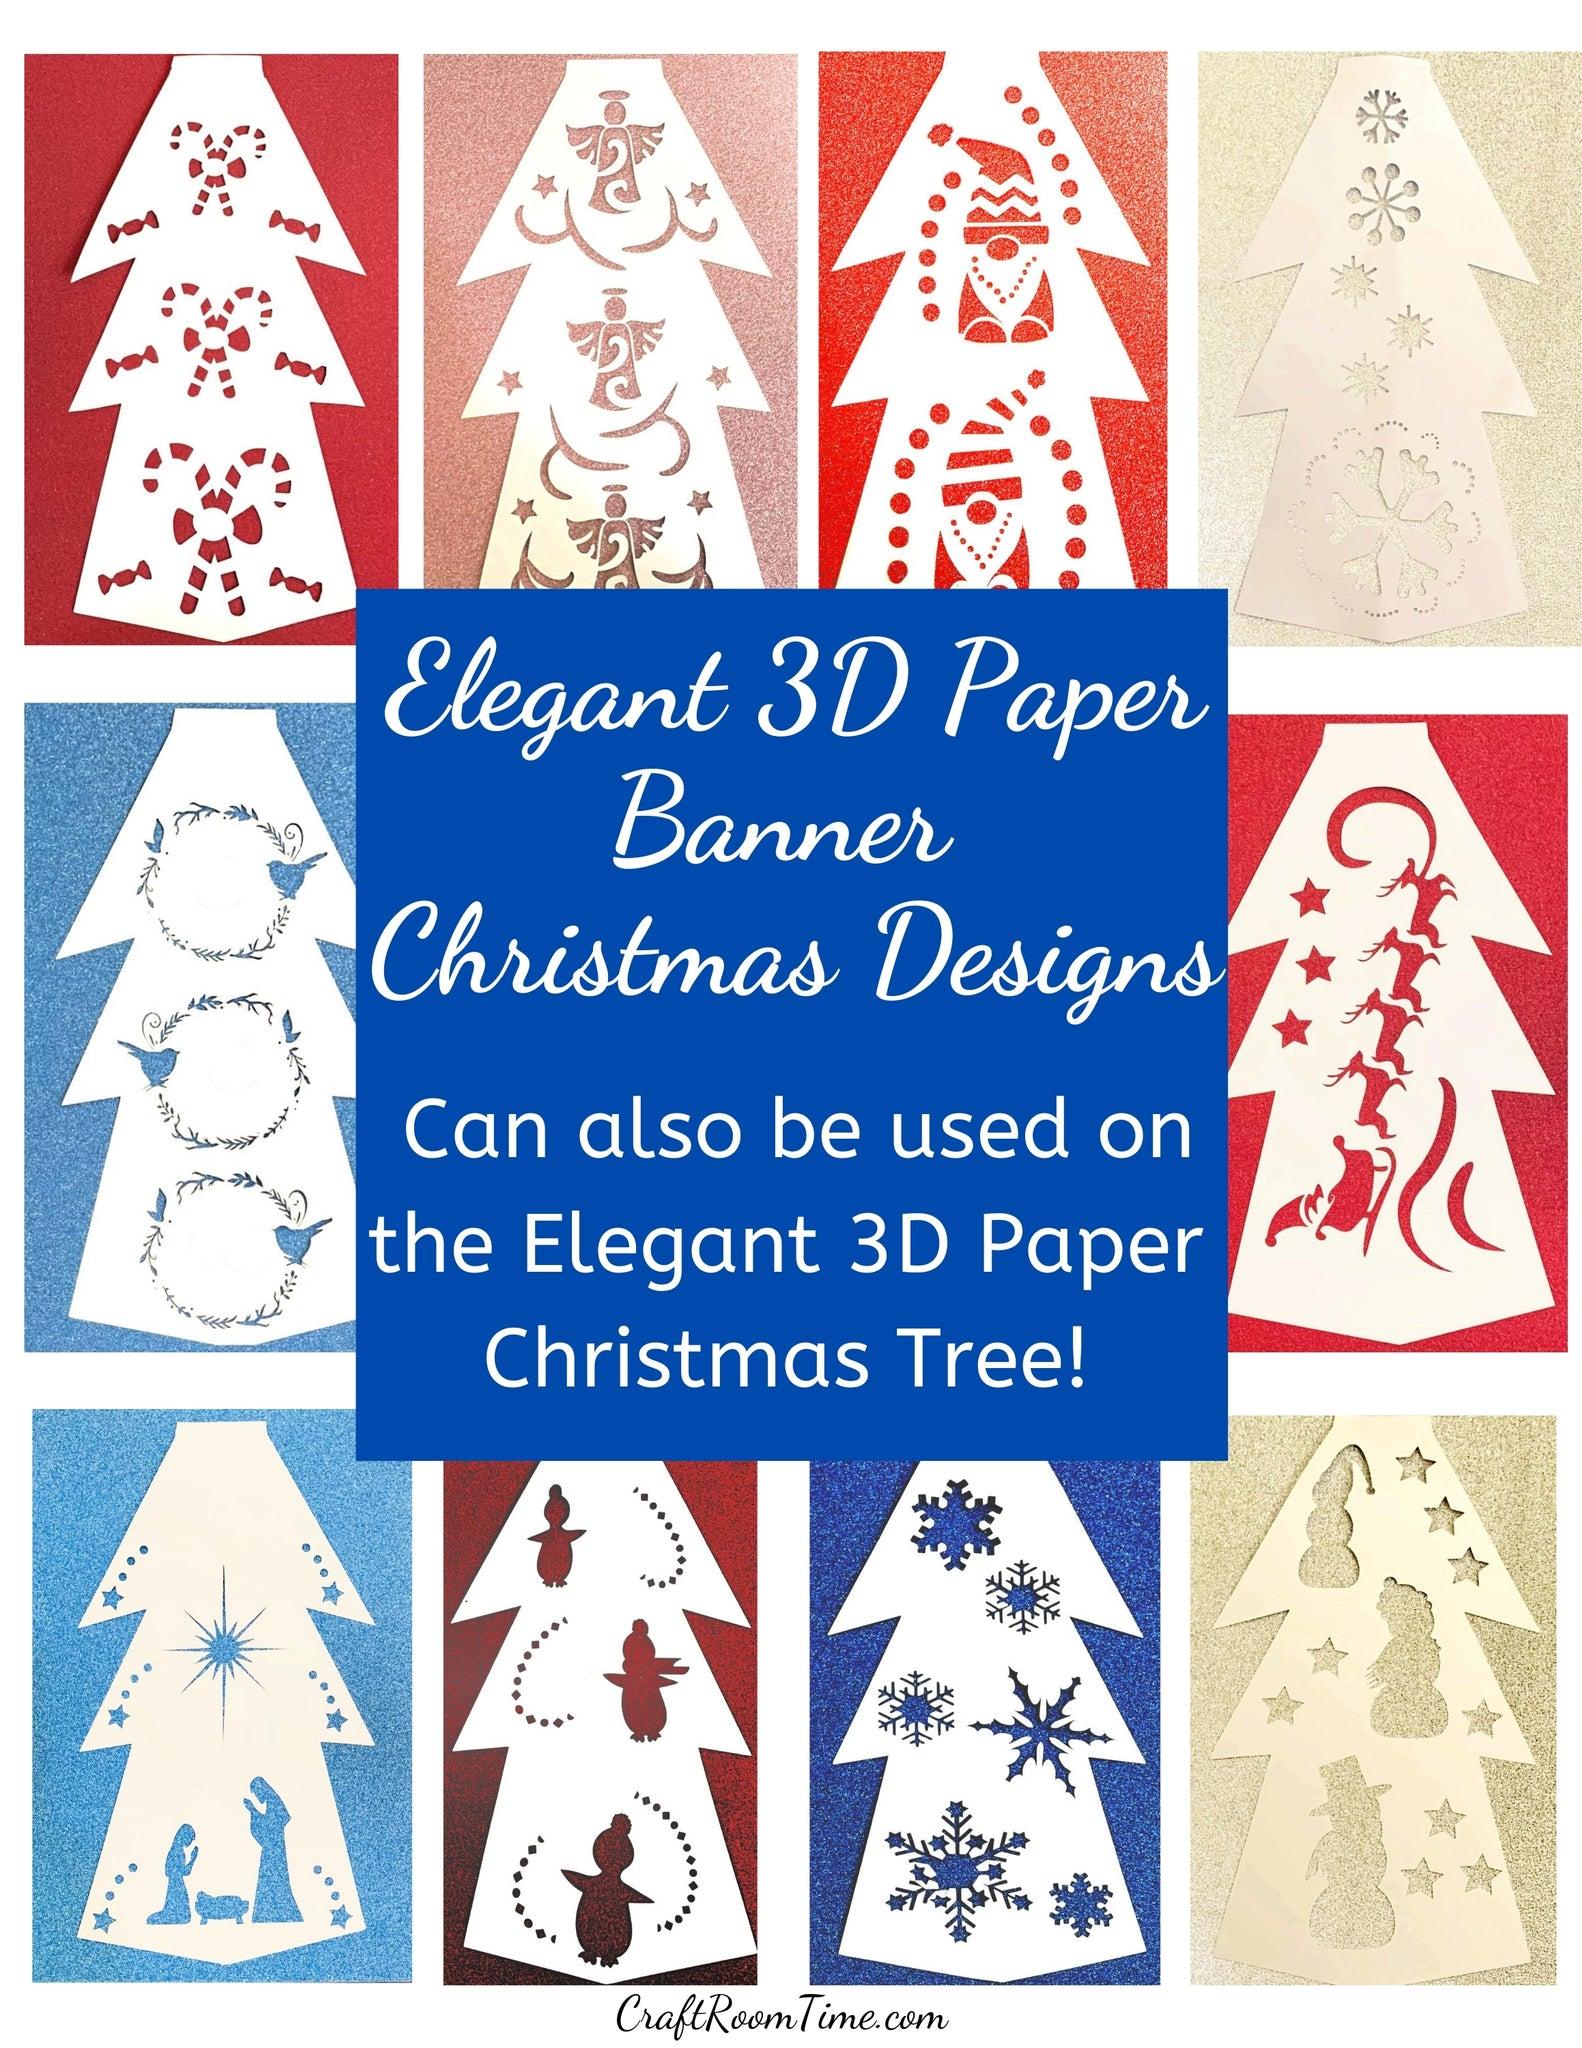 10 Holiday Banner Designs (also can be used on the Elegant Paper Christmas Tree)SVG, EPS, DXF, PNG, JPG